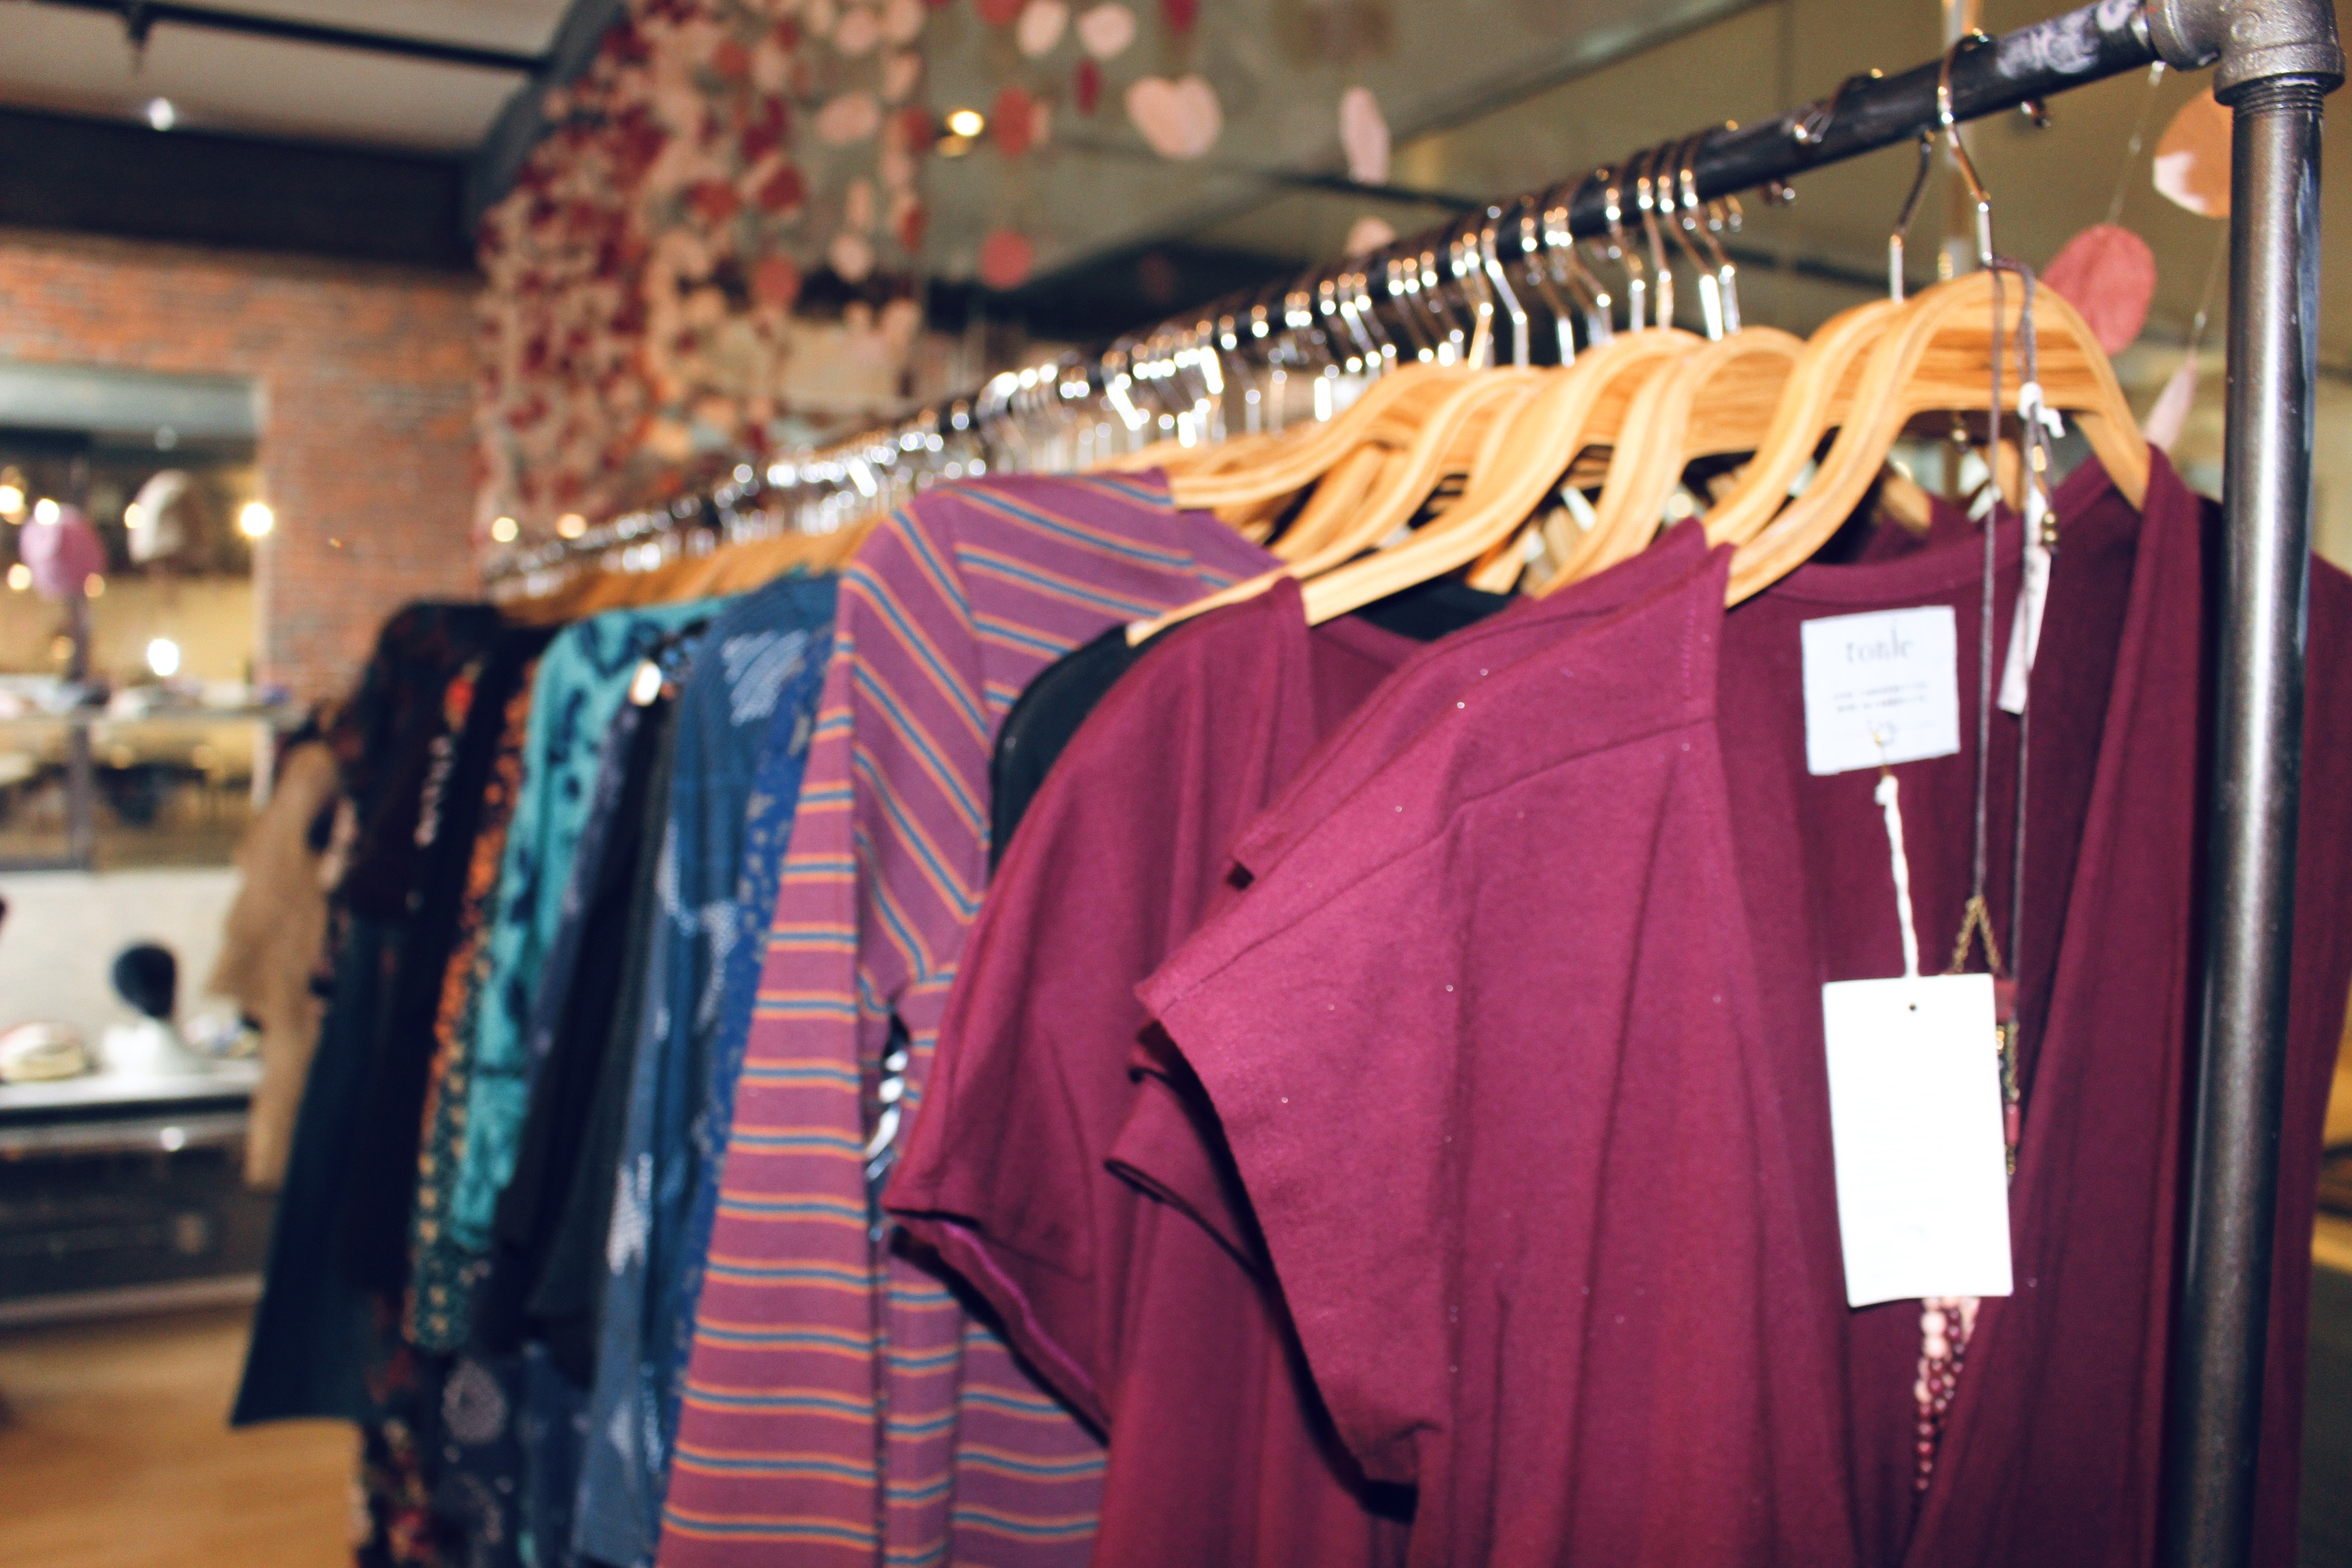 Savoca said 50 percent of the merchandise at Ash and Rose is made in the U.S. Photo by Alexa Gagosz.